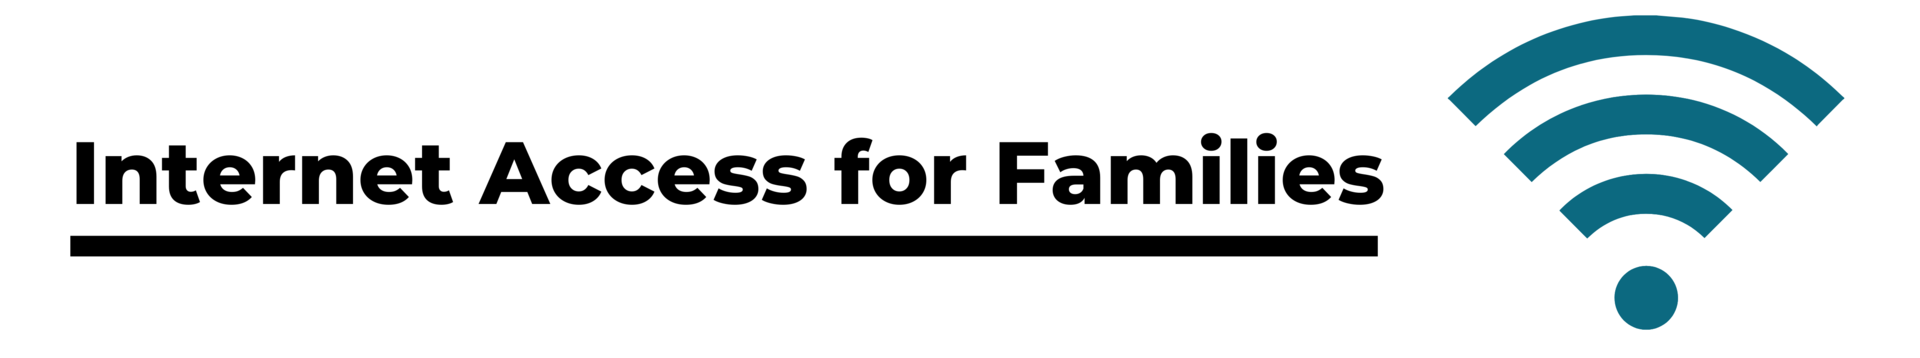 Internet Access for Families